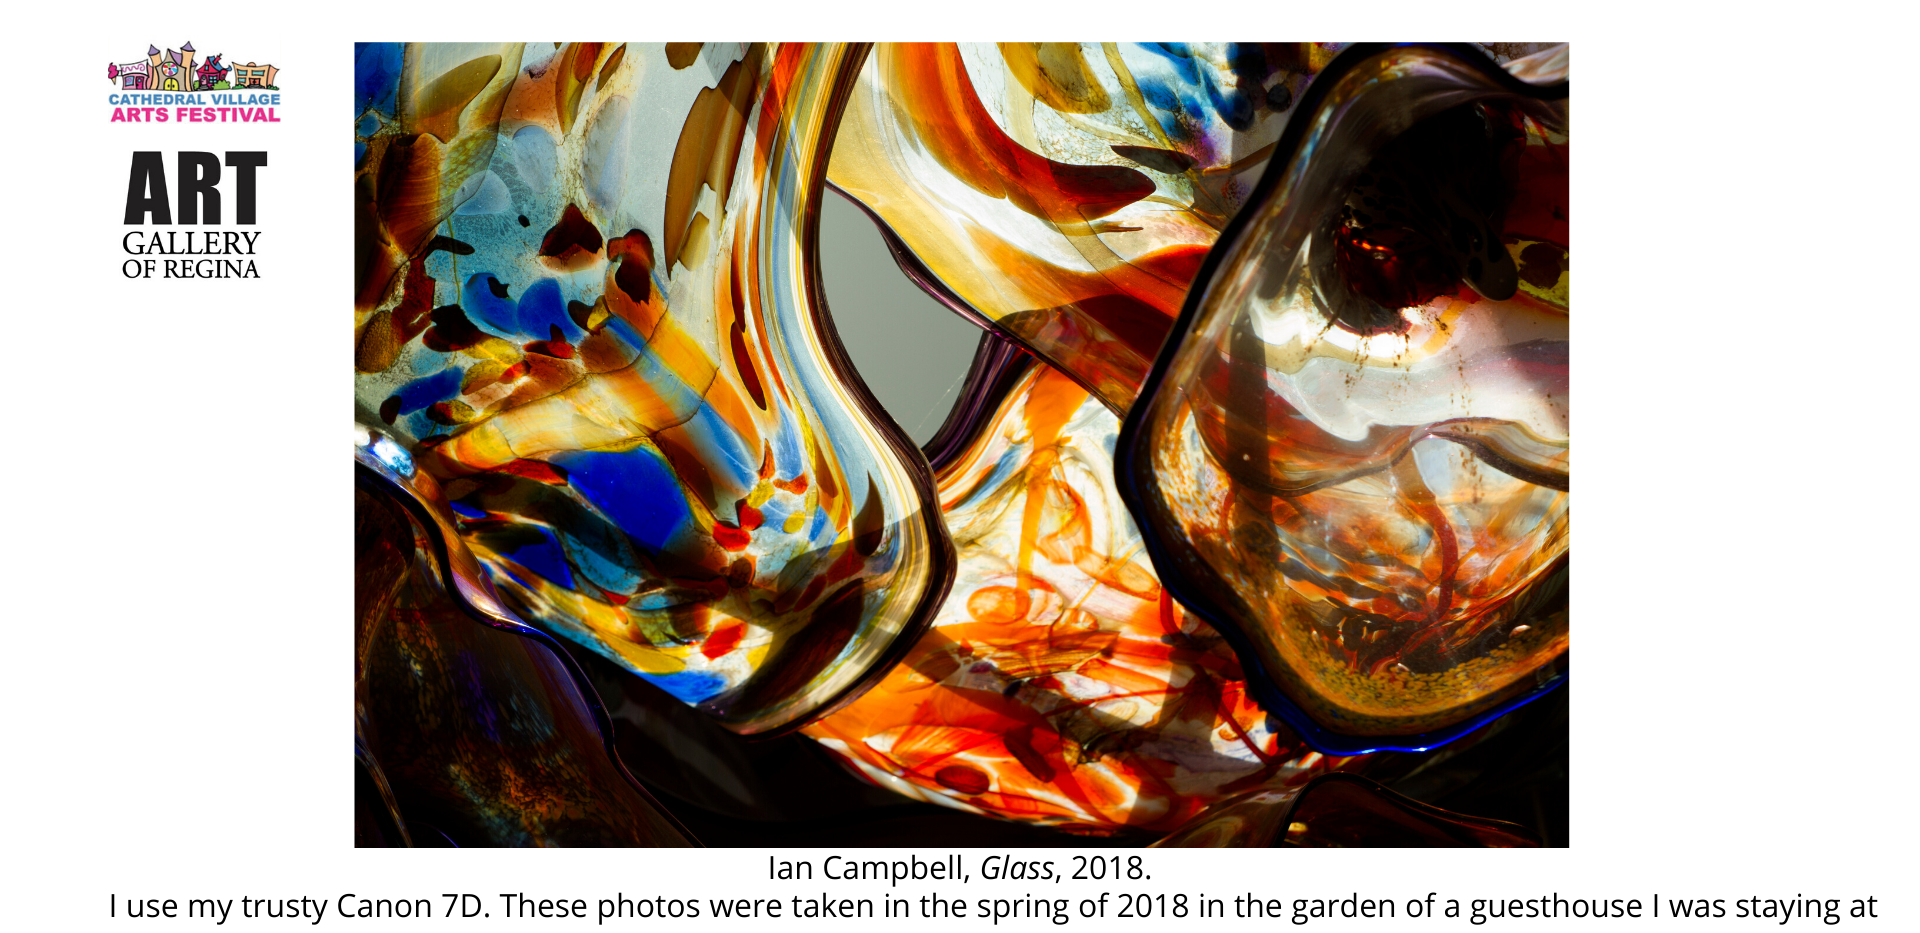 Ian Campbell, Glass, 2018.